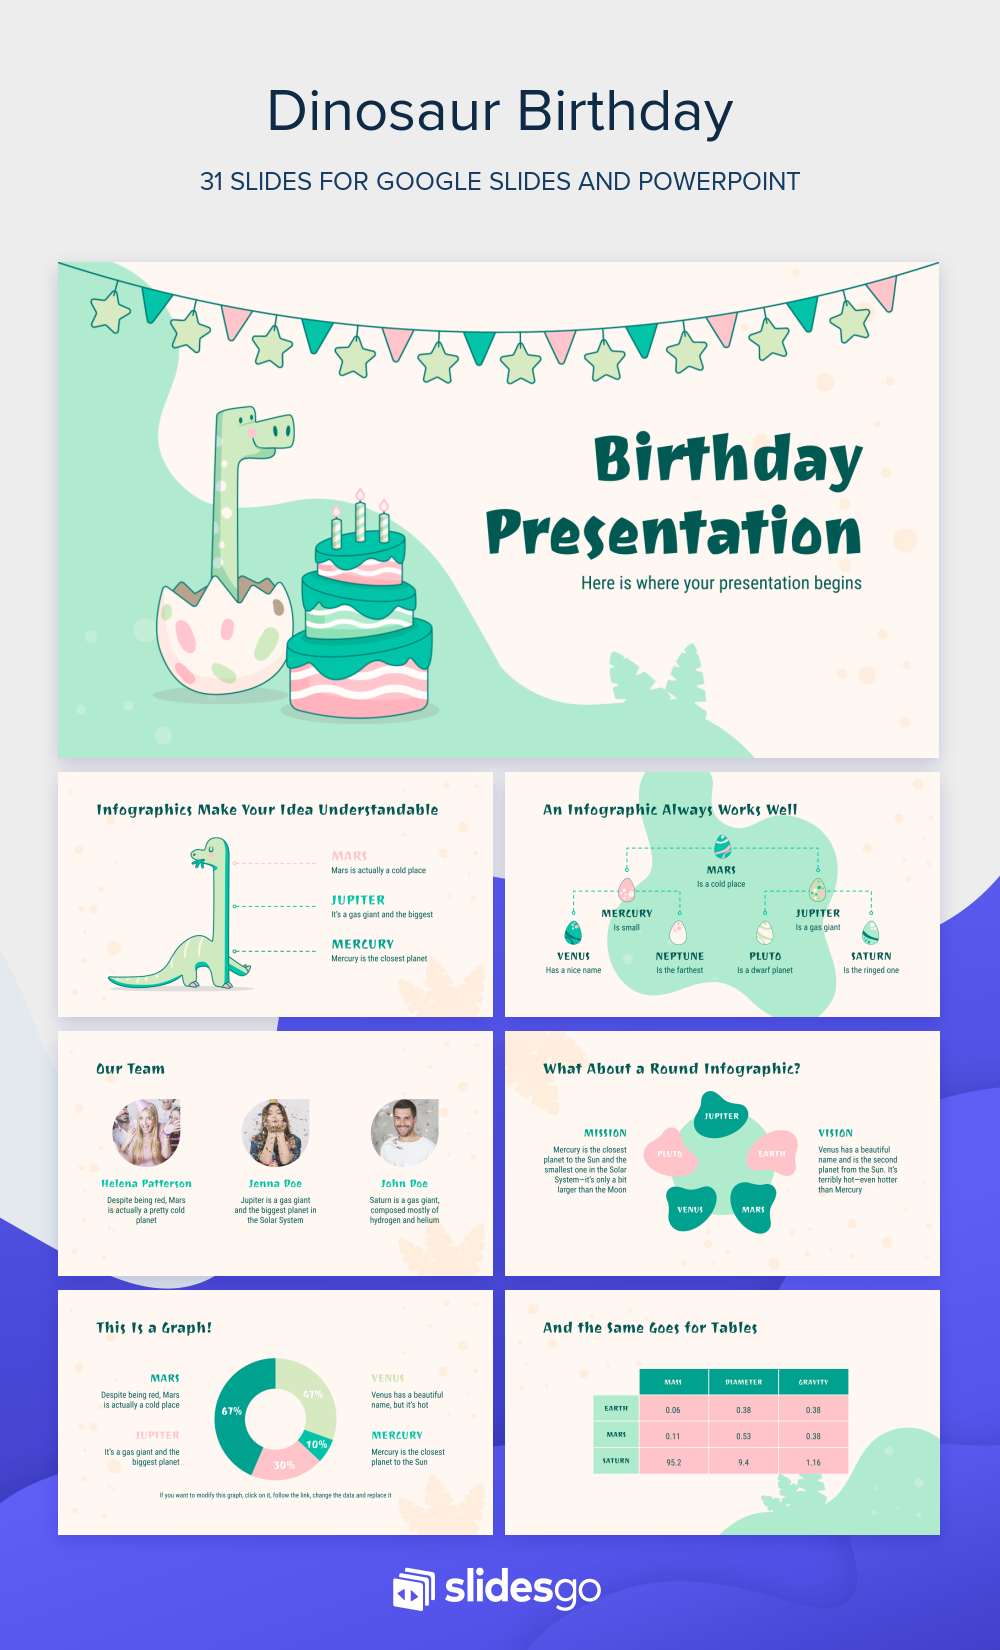 Celebrate Your Birthday Party With Funny Dinosaurs And This Google Slides Theme And Powerpoint Template Blow Google Slides Powerpoint Powerpoint Presentation